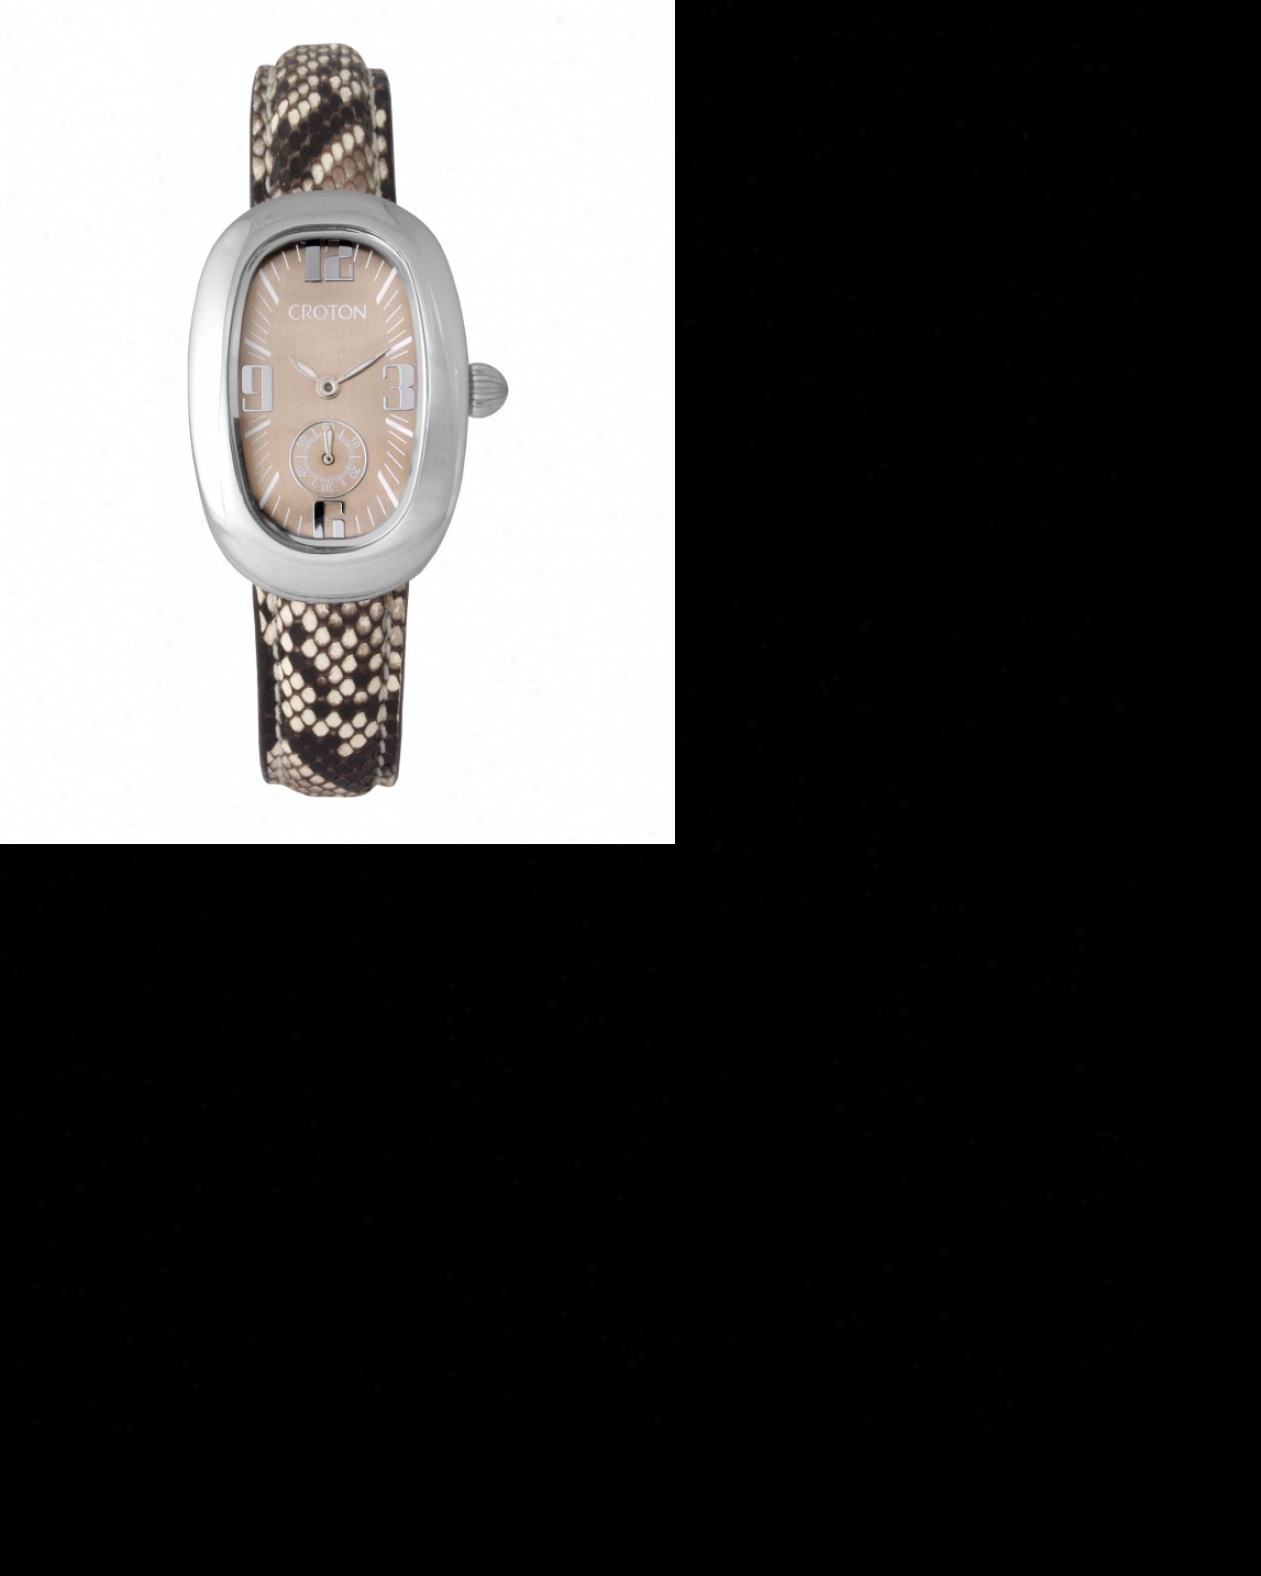 Ladies Croton Reserve Watch With Gray Python Leather Strap